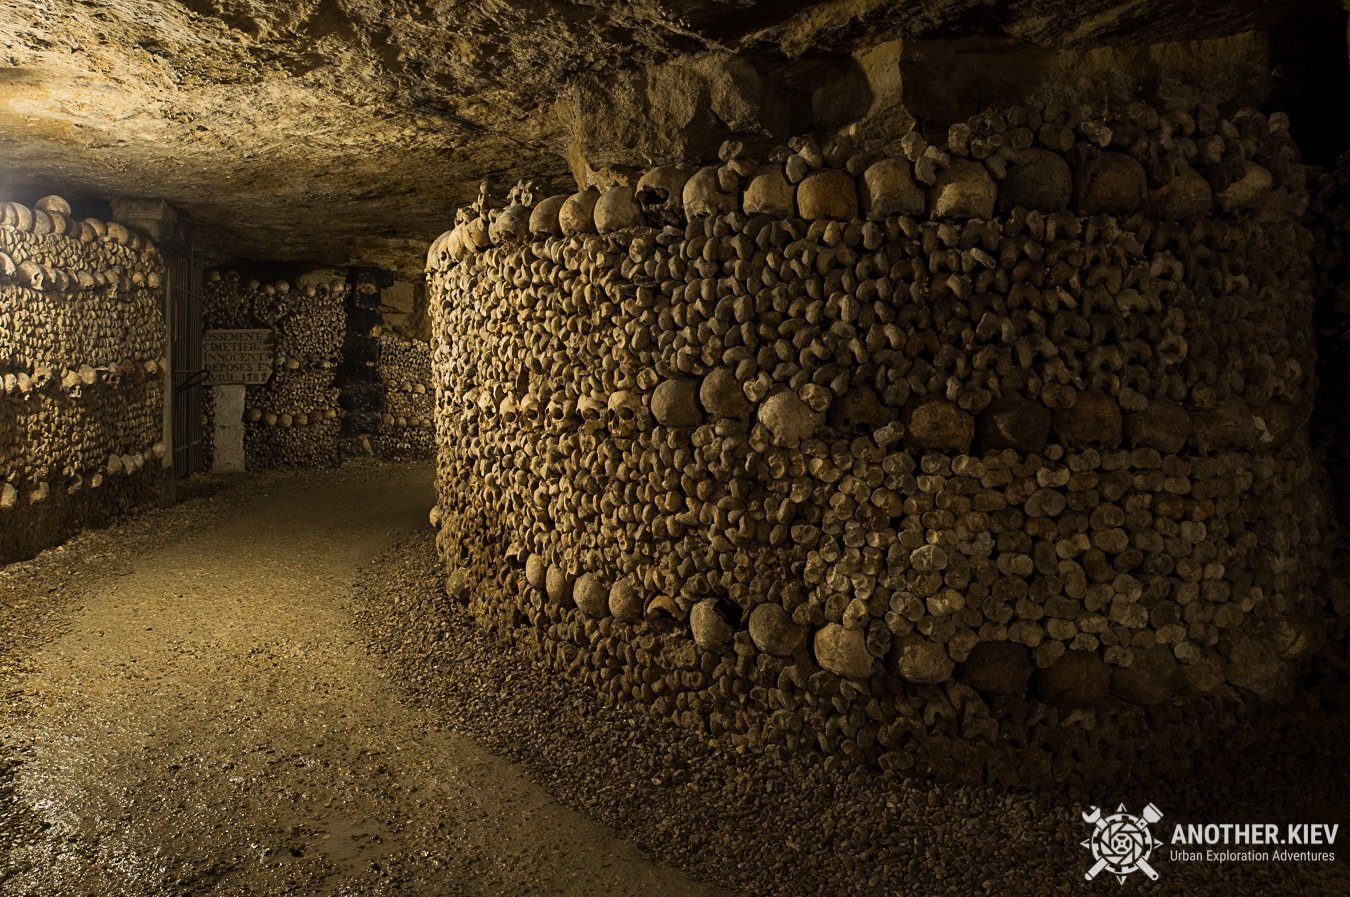 paris-catacombs-dark-urbex-tour-4 PARIS CATACOMBS DARK TOUR